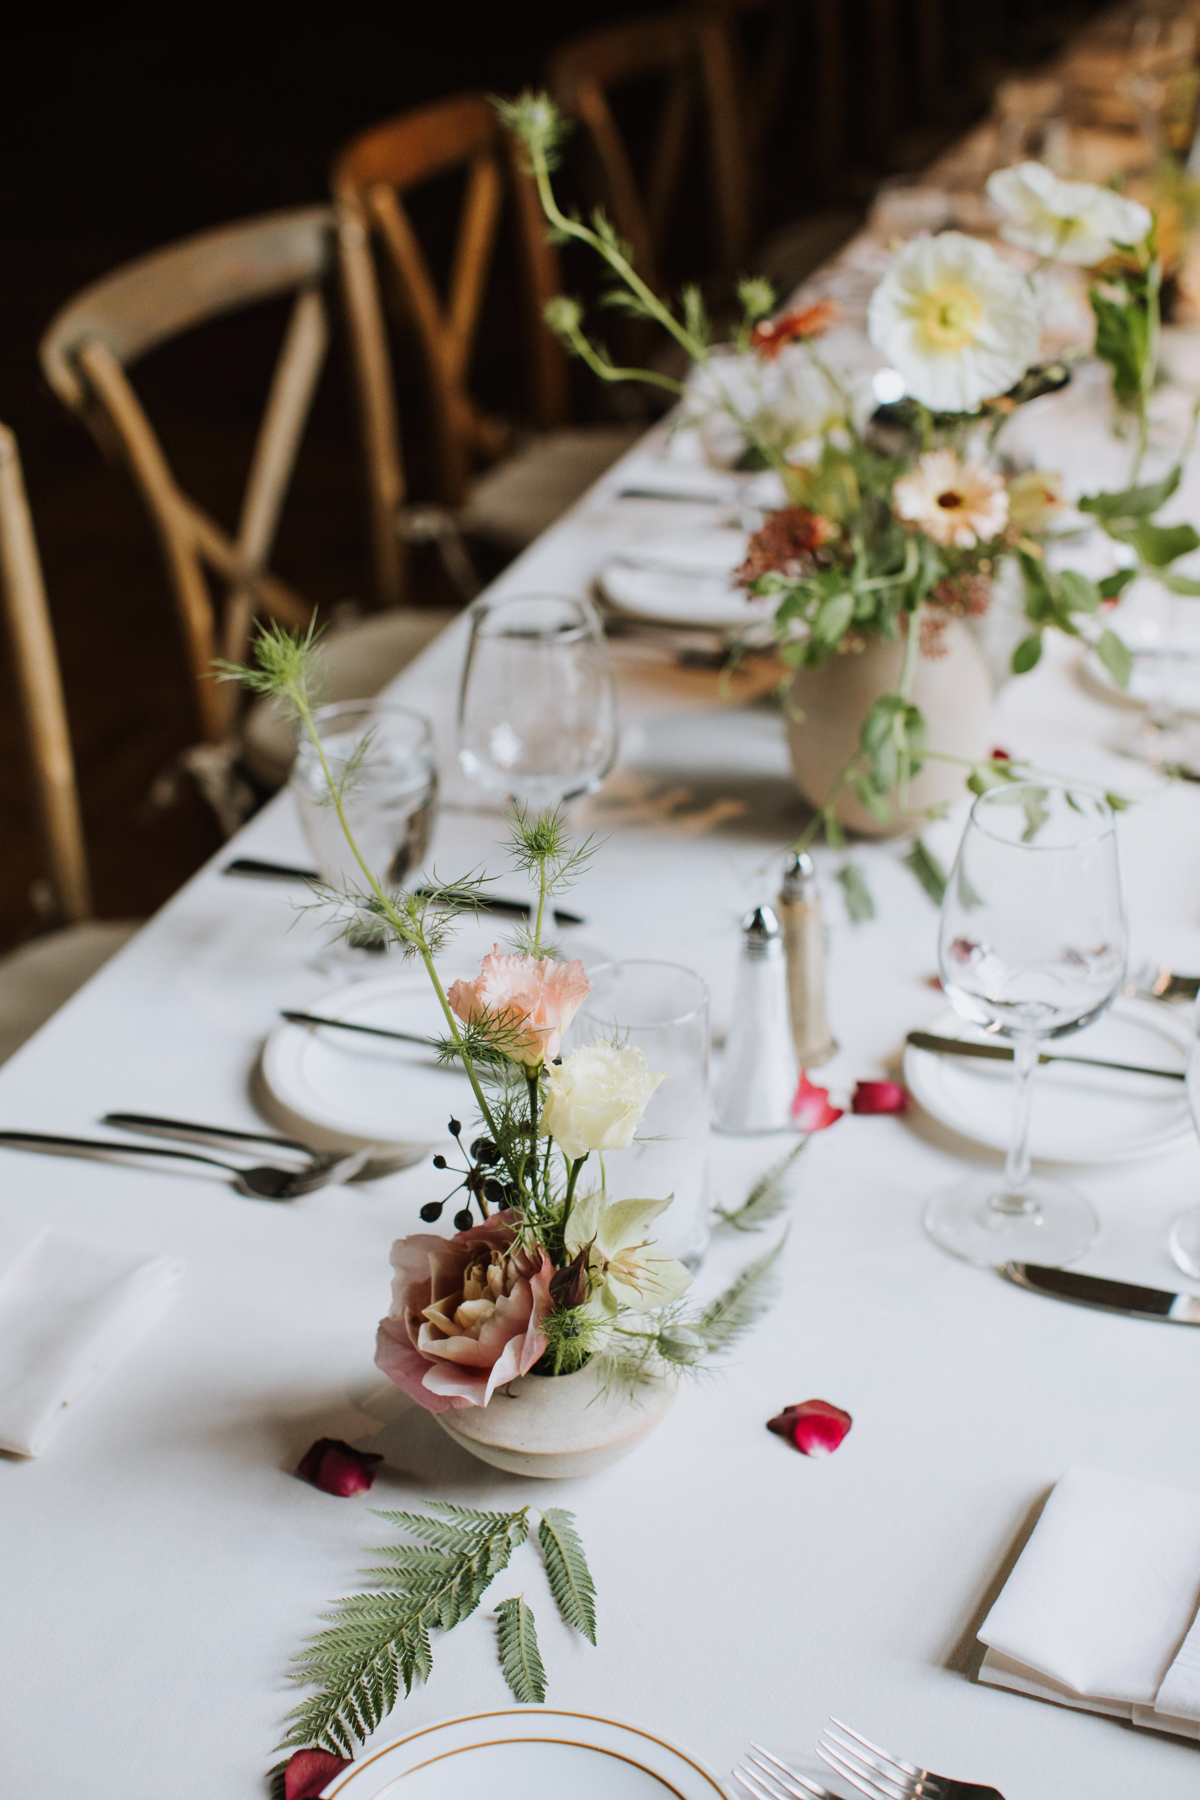 Spring centerpieces by Venn Floral with poppies, roses, ferns, and hellebores photographed by Andria Lo at The Berkely City Club, a gorgeous Julia Morgan building with eclectic antique decor and a Wes Anderson vibe.